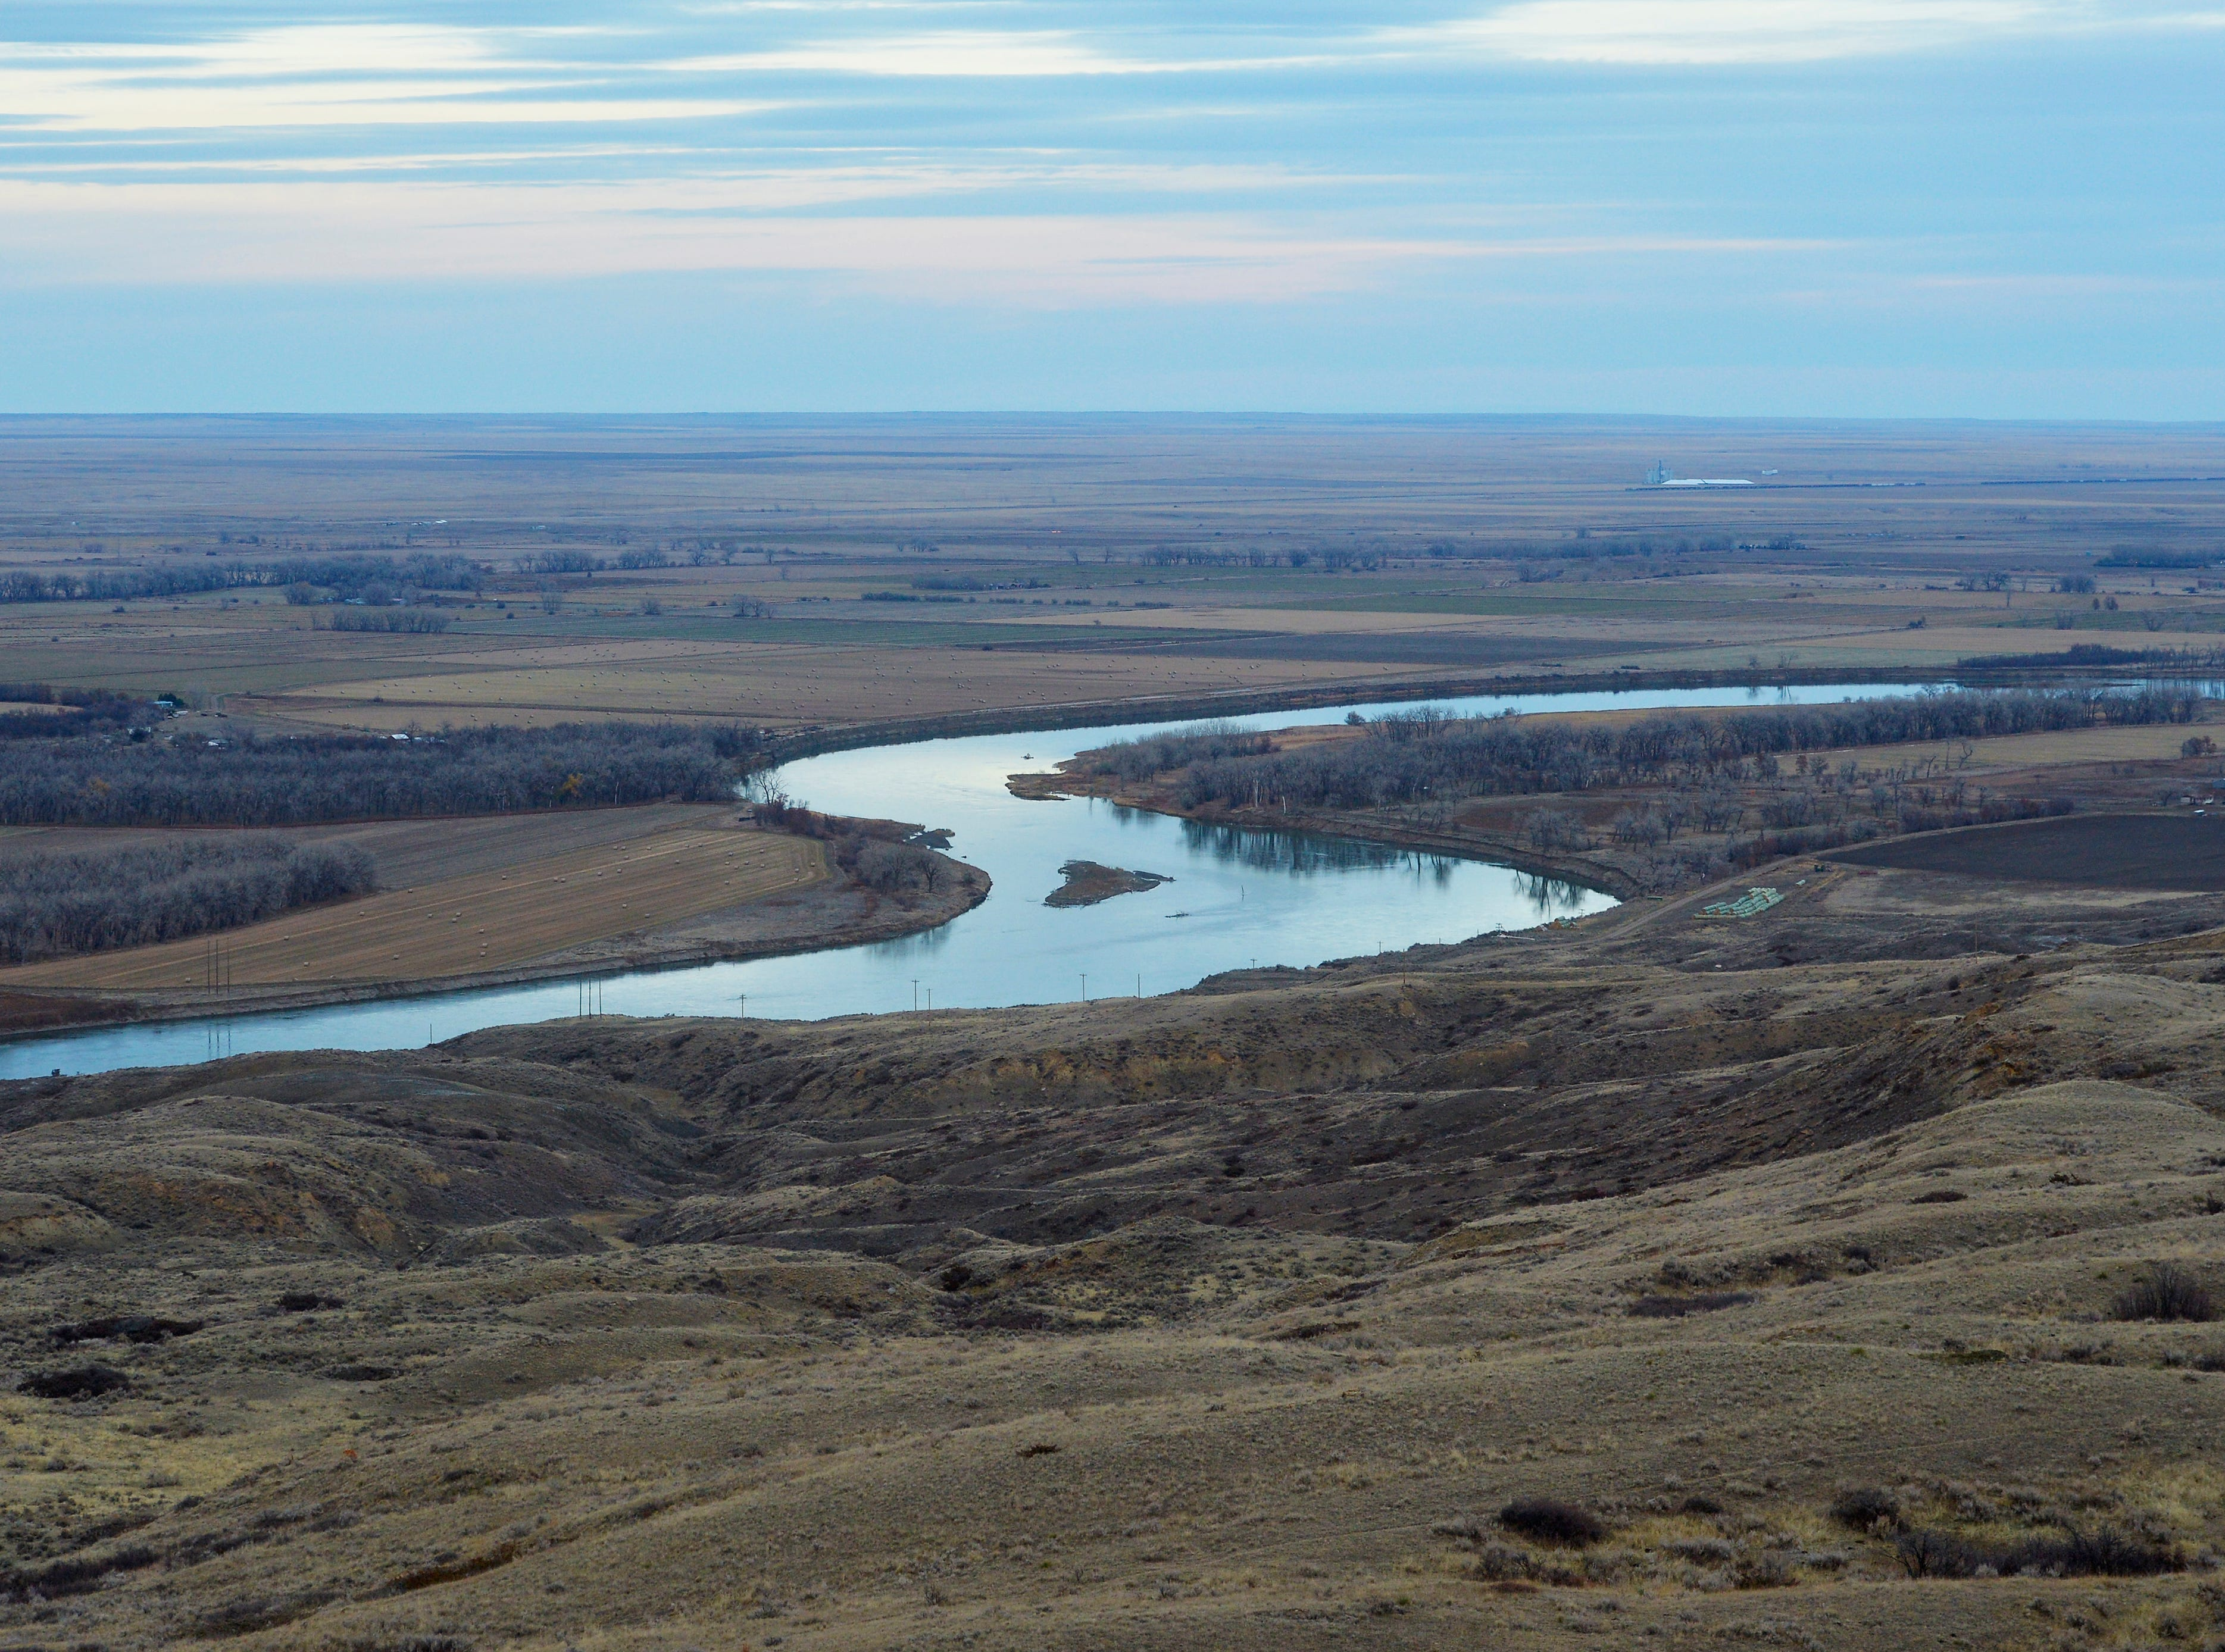 The Keystone XL Pipeline will cross the Missouri River near its confluence with the Milk river in Vallley County, Mont.  Horizontal directional drilling will be used for the 2,592 foot-crossing.  The pipeline will be buried 53 feet below the river.